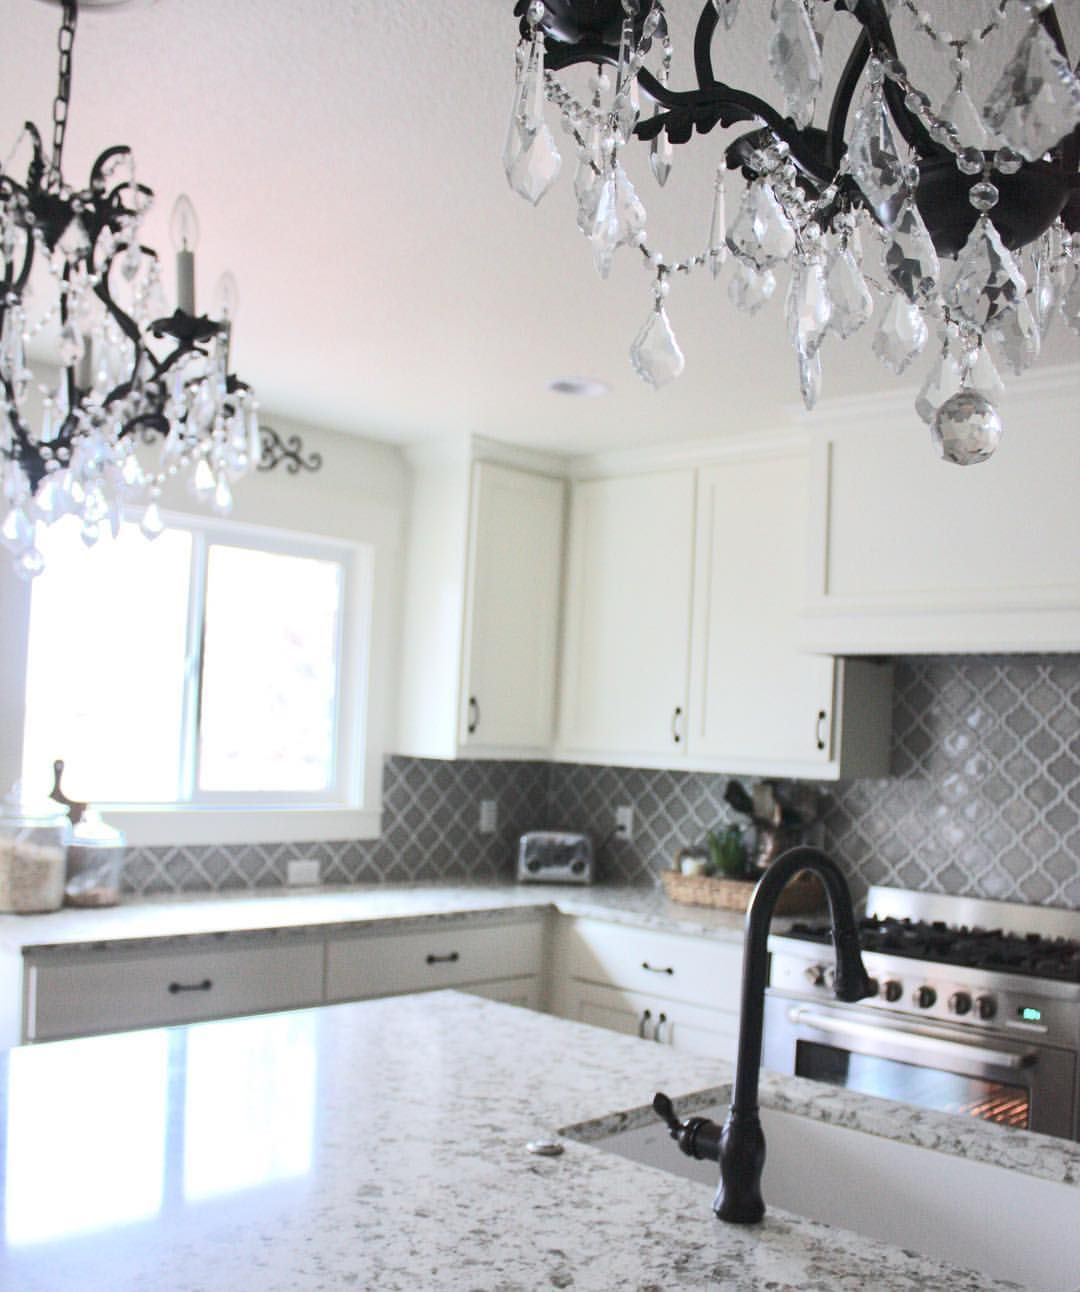 Operationprettyhouse On Instagram Black And White Kitchen Gray Backsplash Arabesque Tile Grey Backsplash Neutral Backsplash Kitchen Backsplash Arabesque